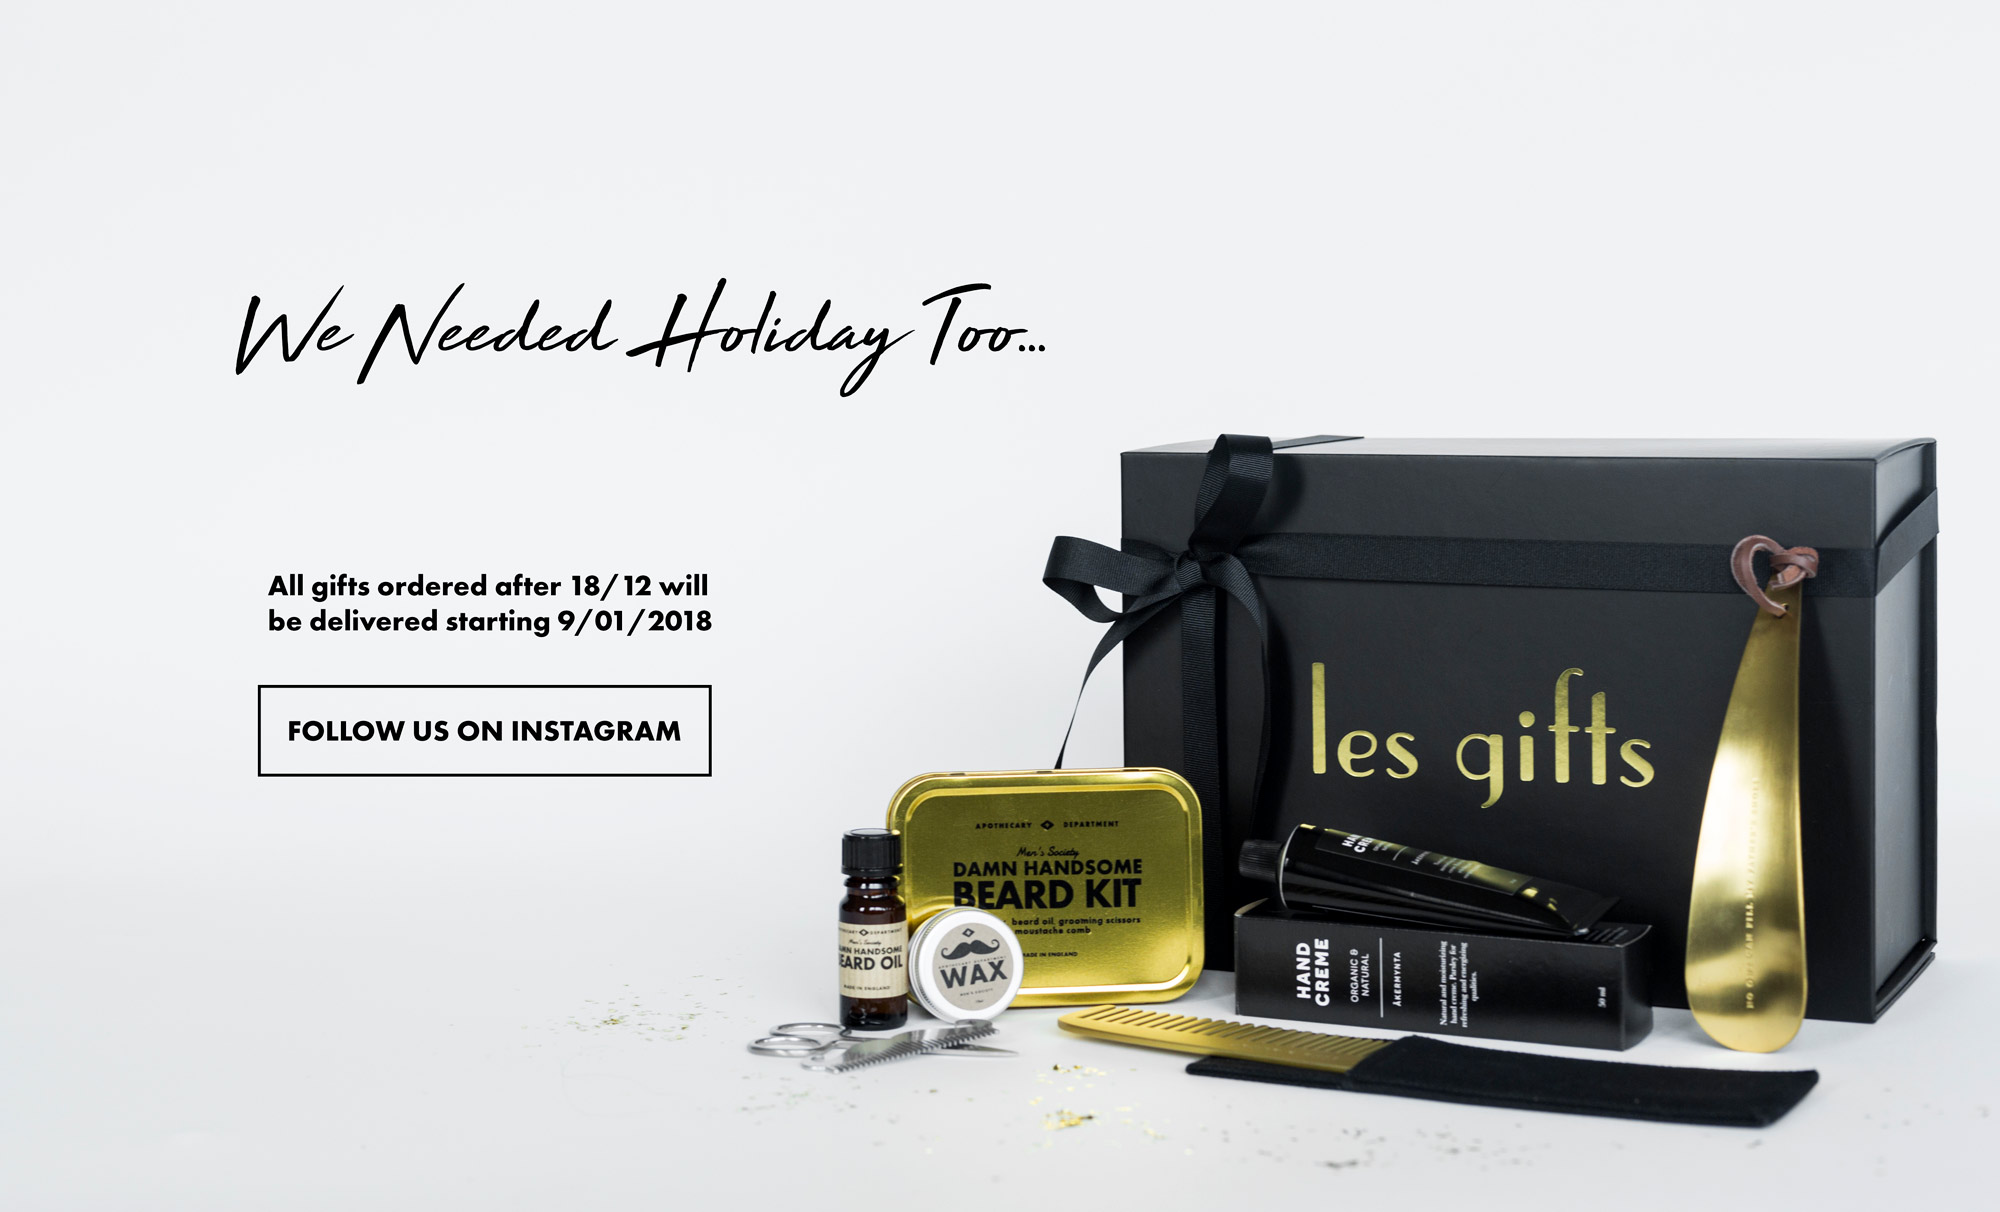 les gifts christmas